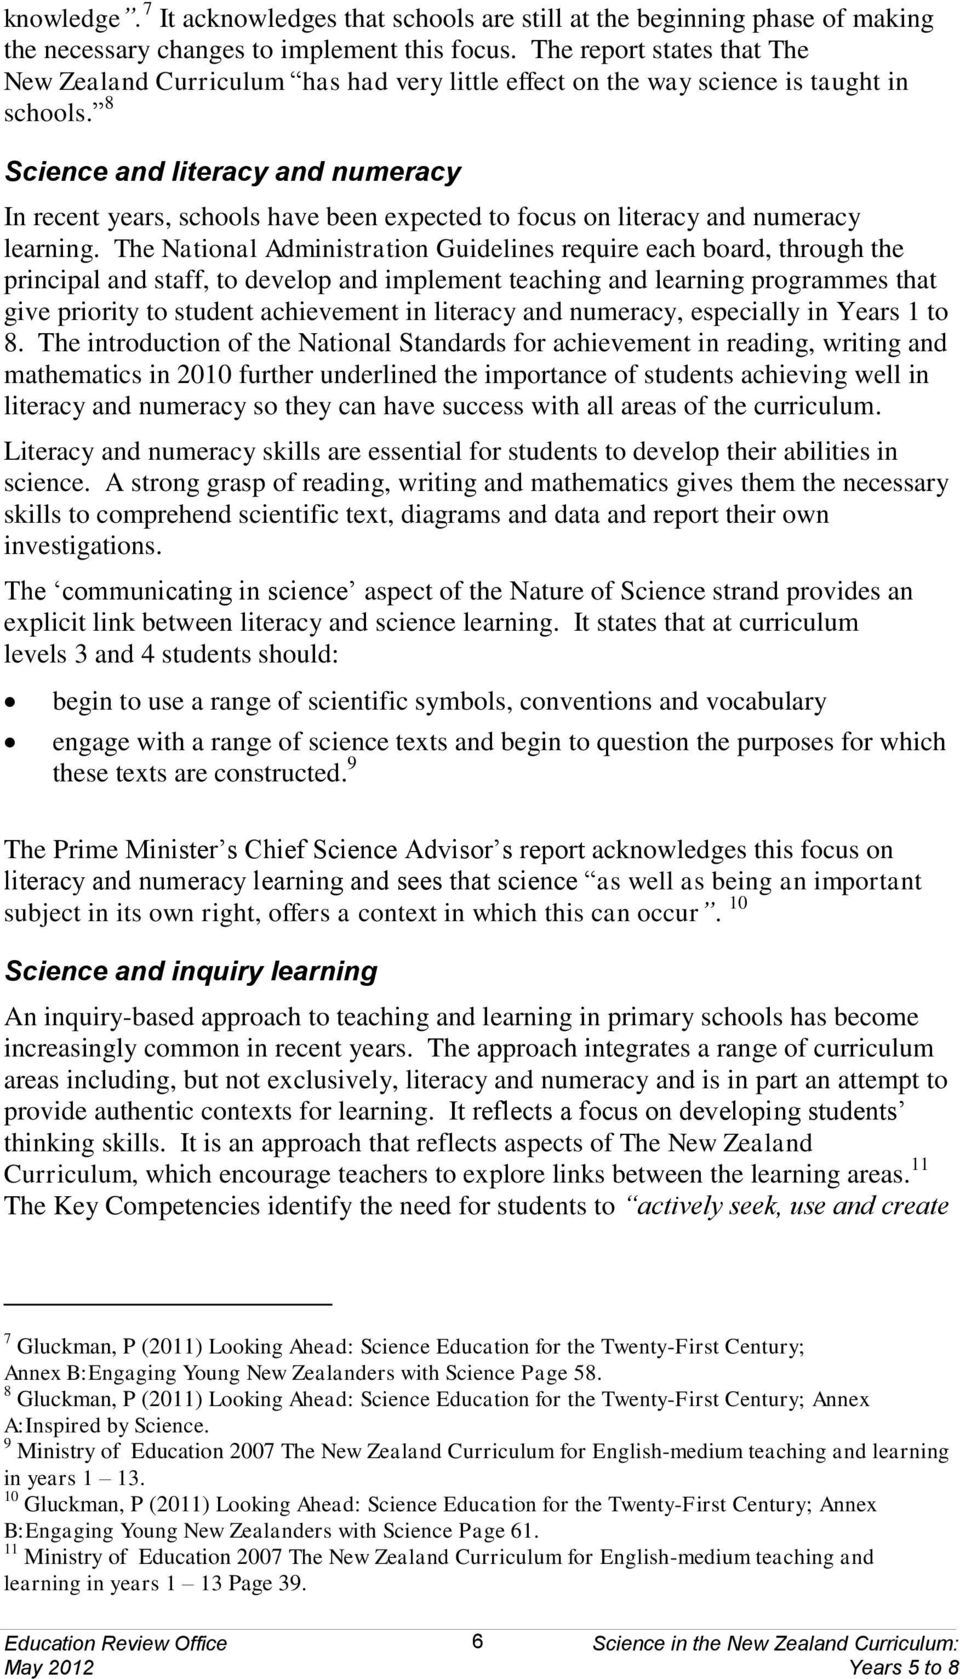 8 Science and literacy and numeracy In recent years, schools have been expected to focus on literacy and numeracy learning.